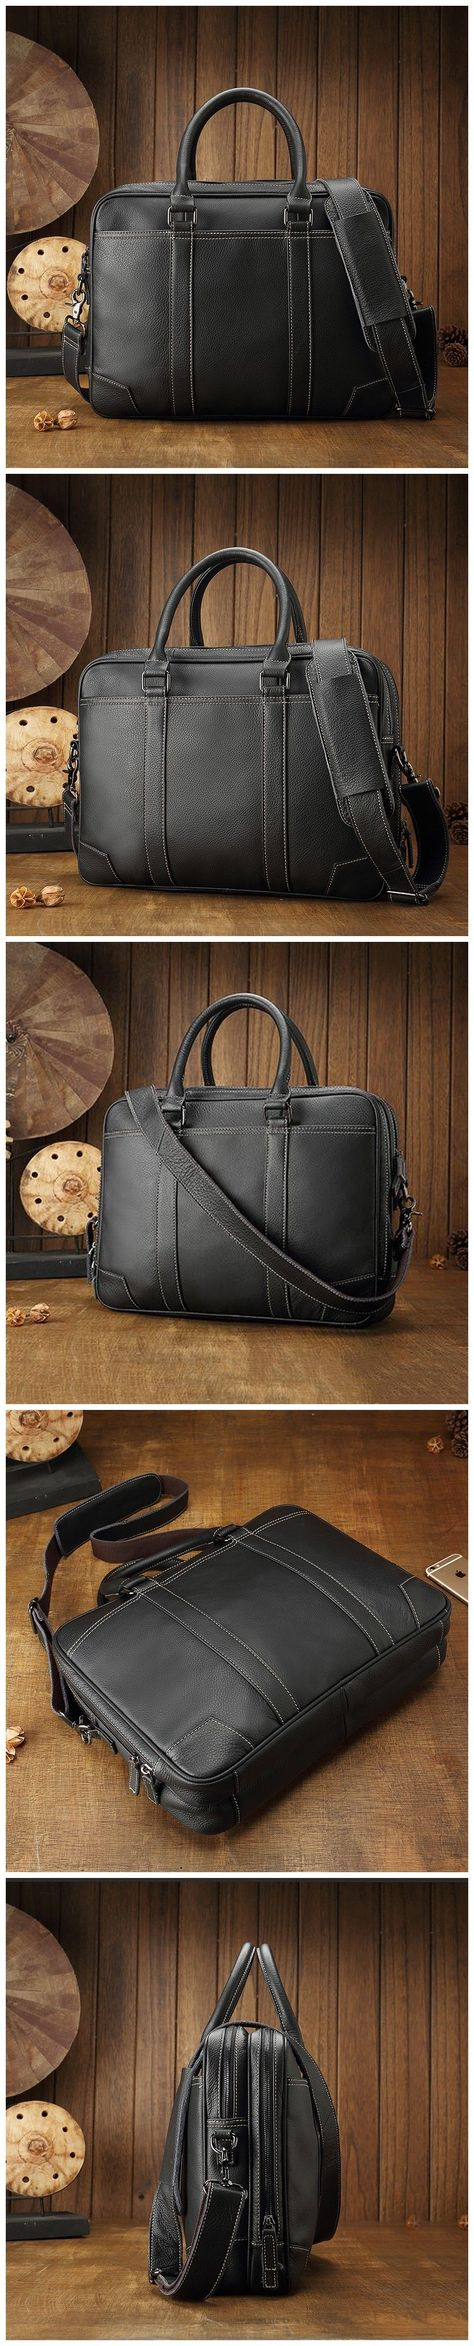 ad36cf8ba Handmade Men Briefcase Full Grain Leather Messenger Bag Laptop Bag JD538